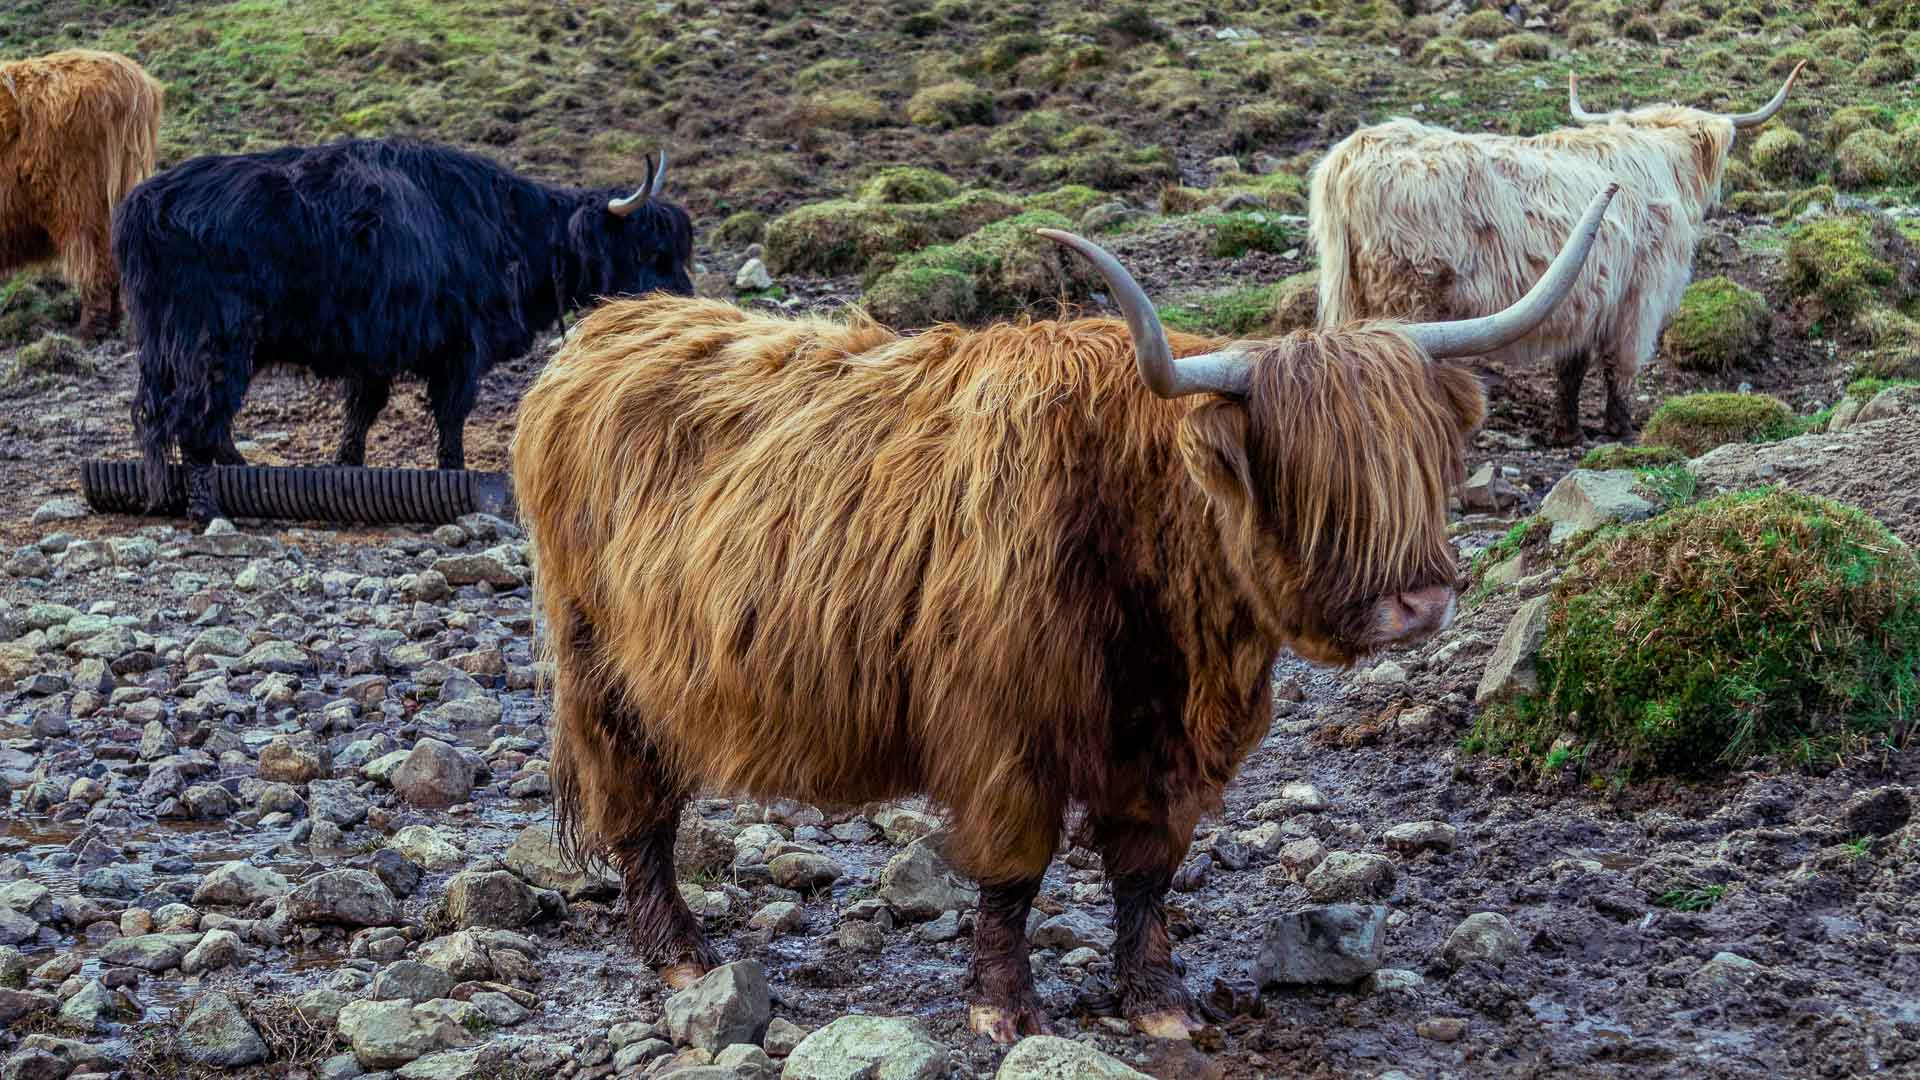 Highland Cow on our Scotland road trip